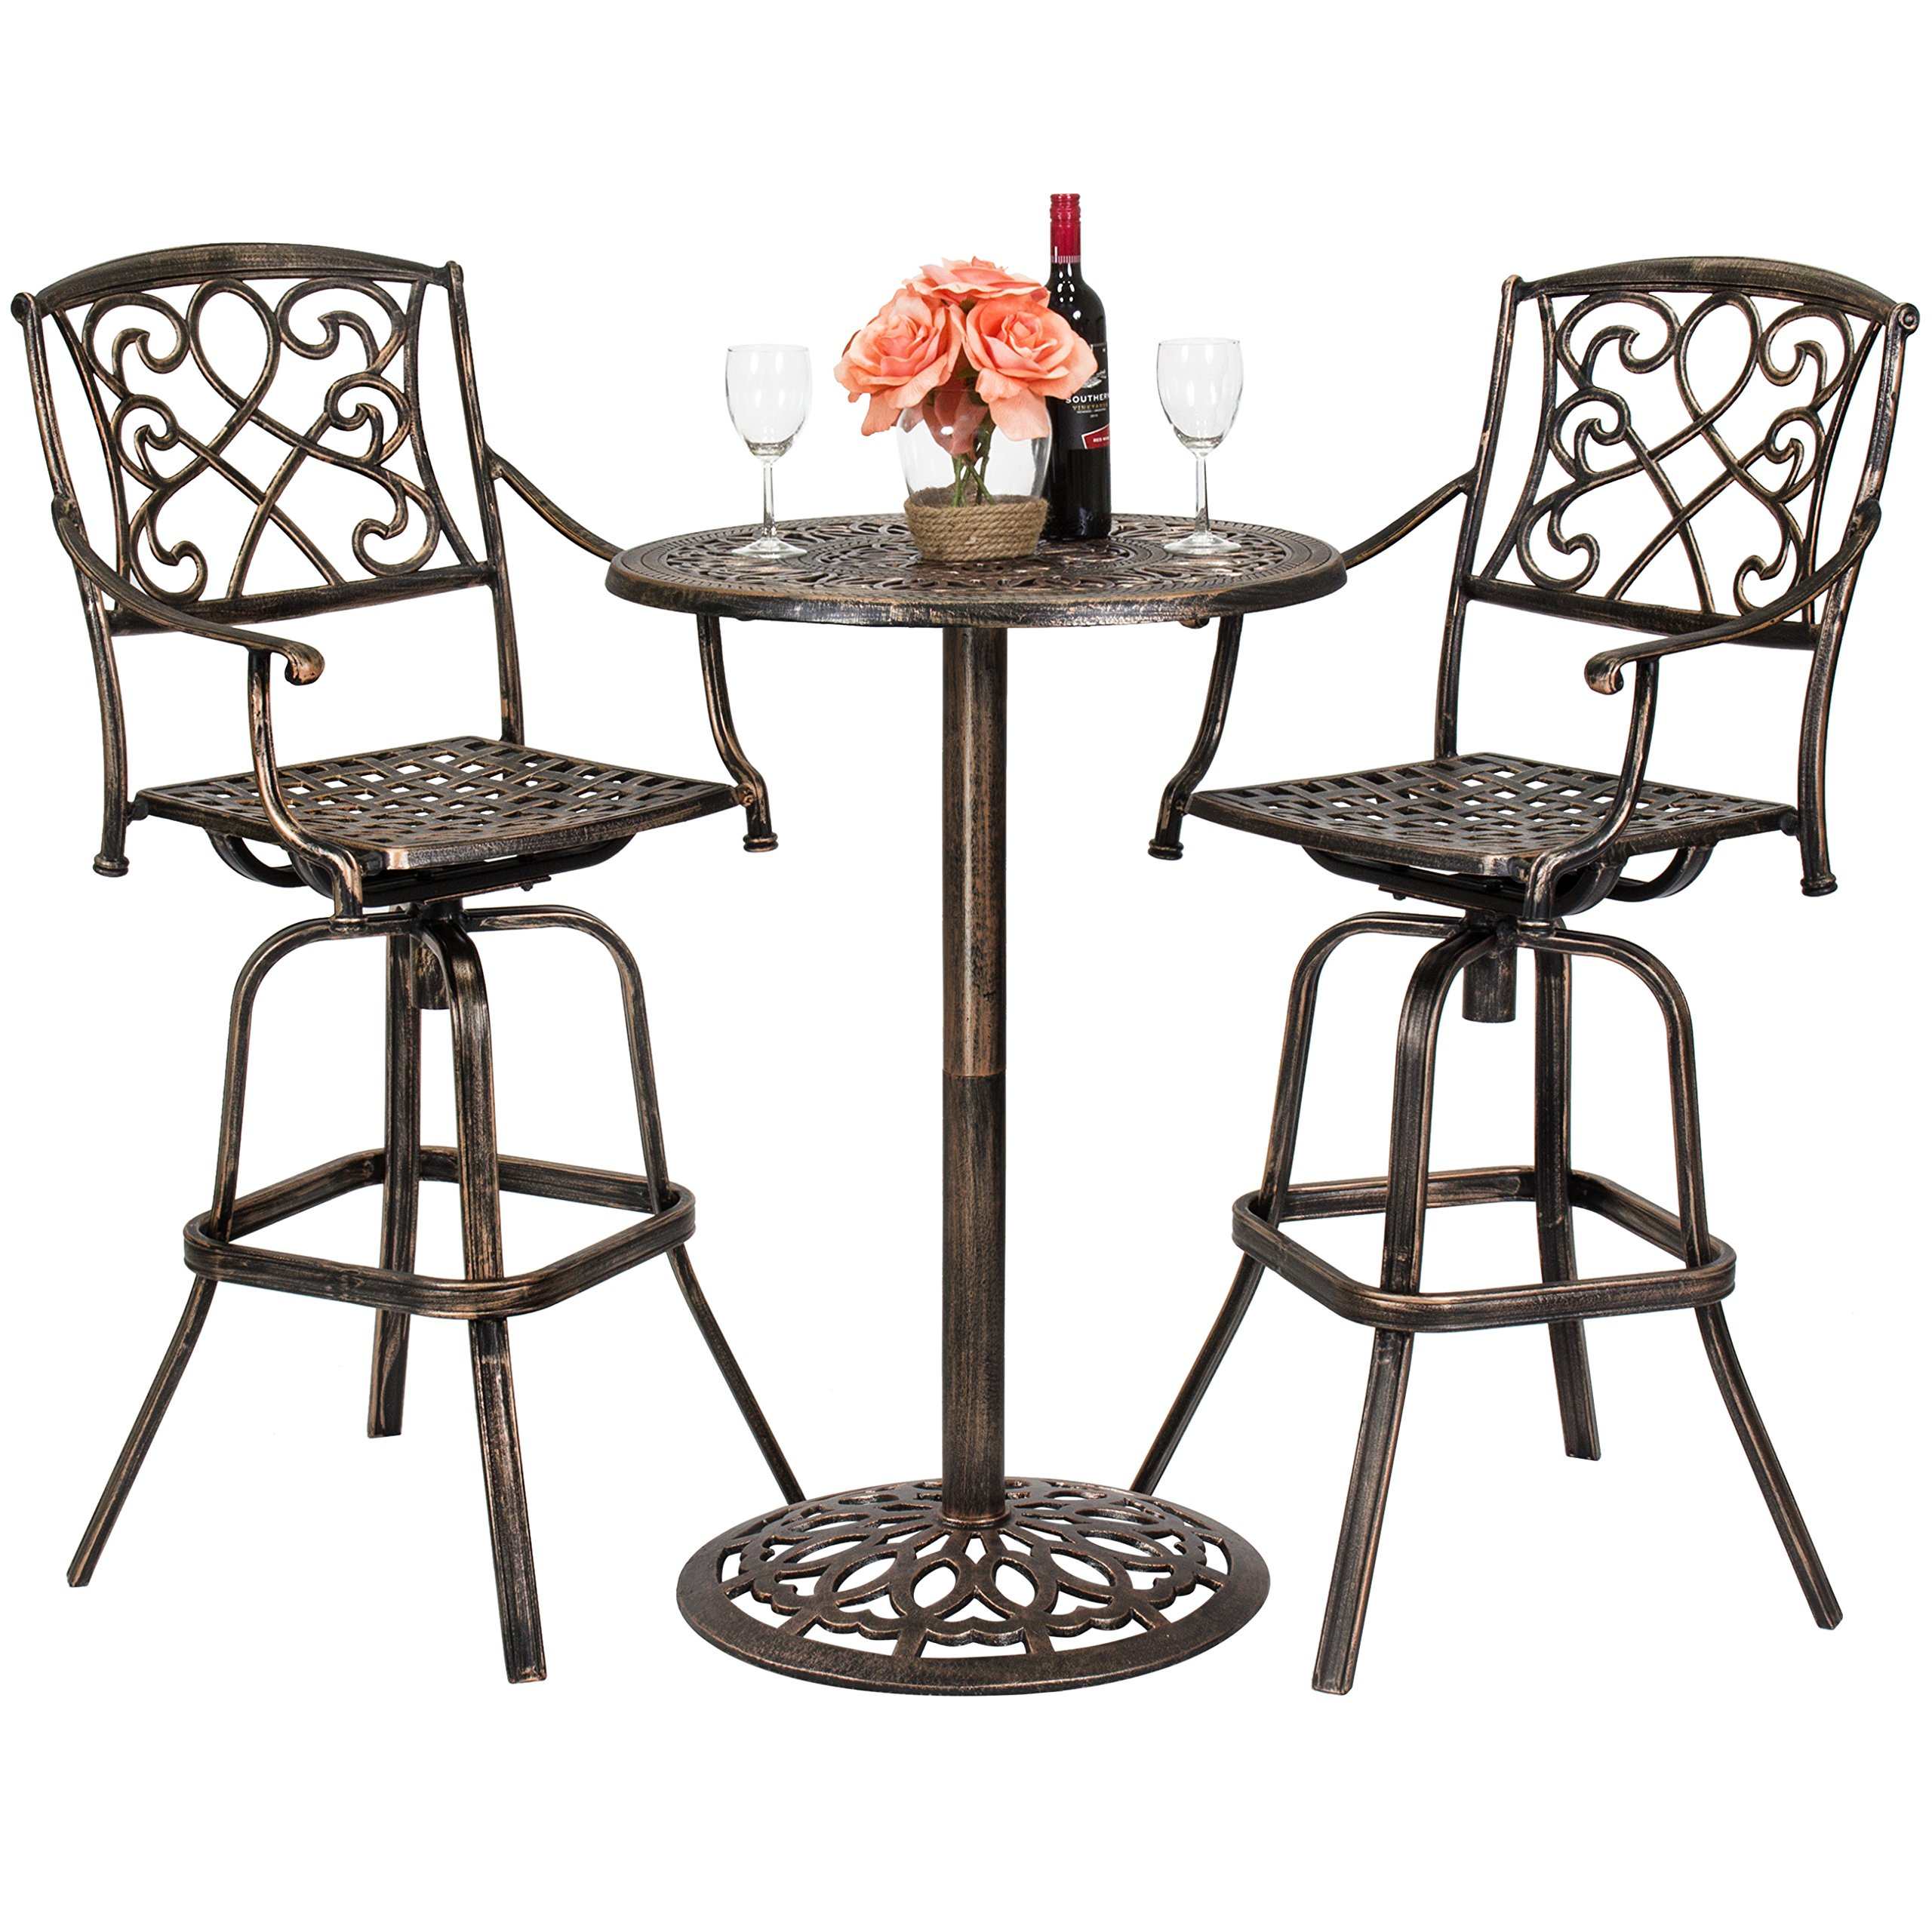 Best Choice Products 3-Piece Outdoor Cast Aluminum Bistro Set for Patio, Porch w/ 2 360-Swivel Chairs - Antique Copper